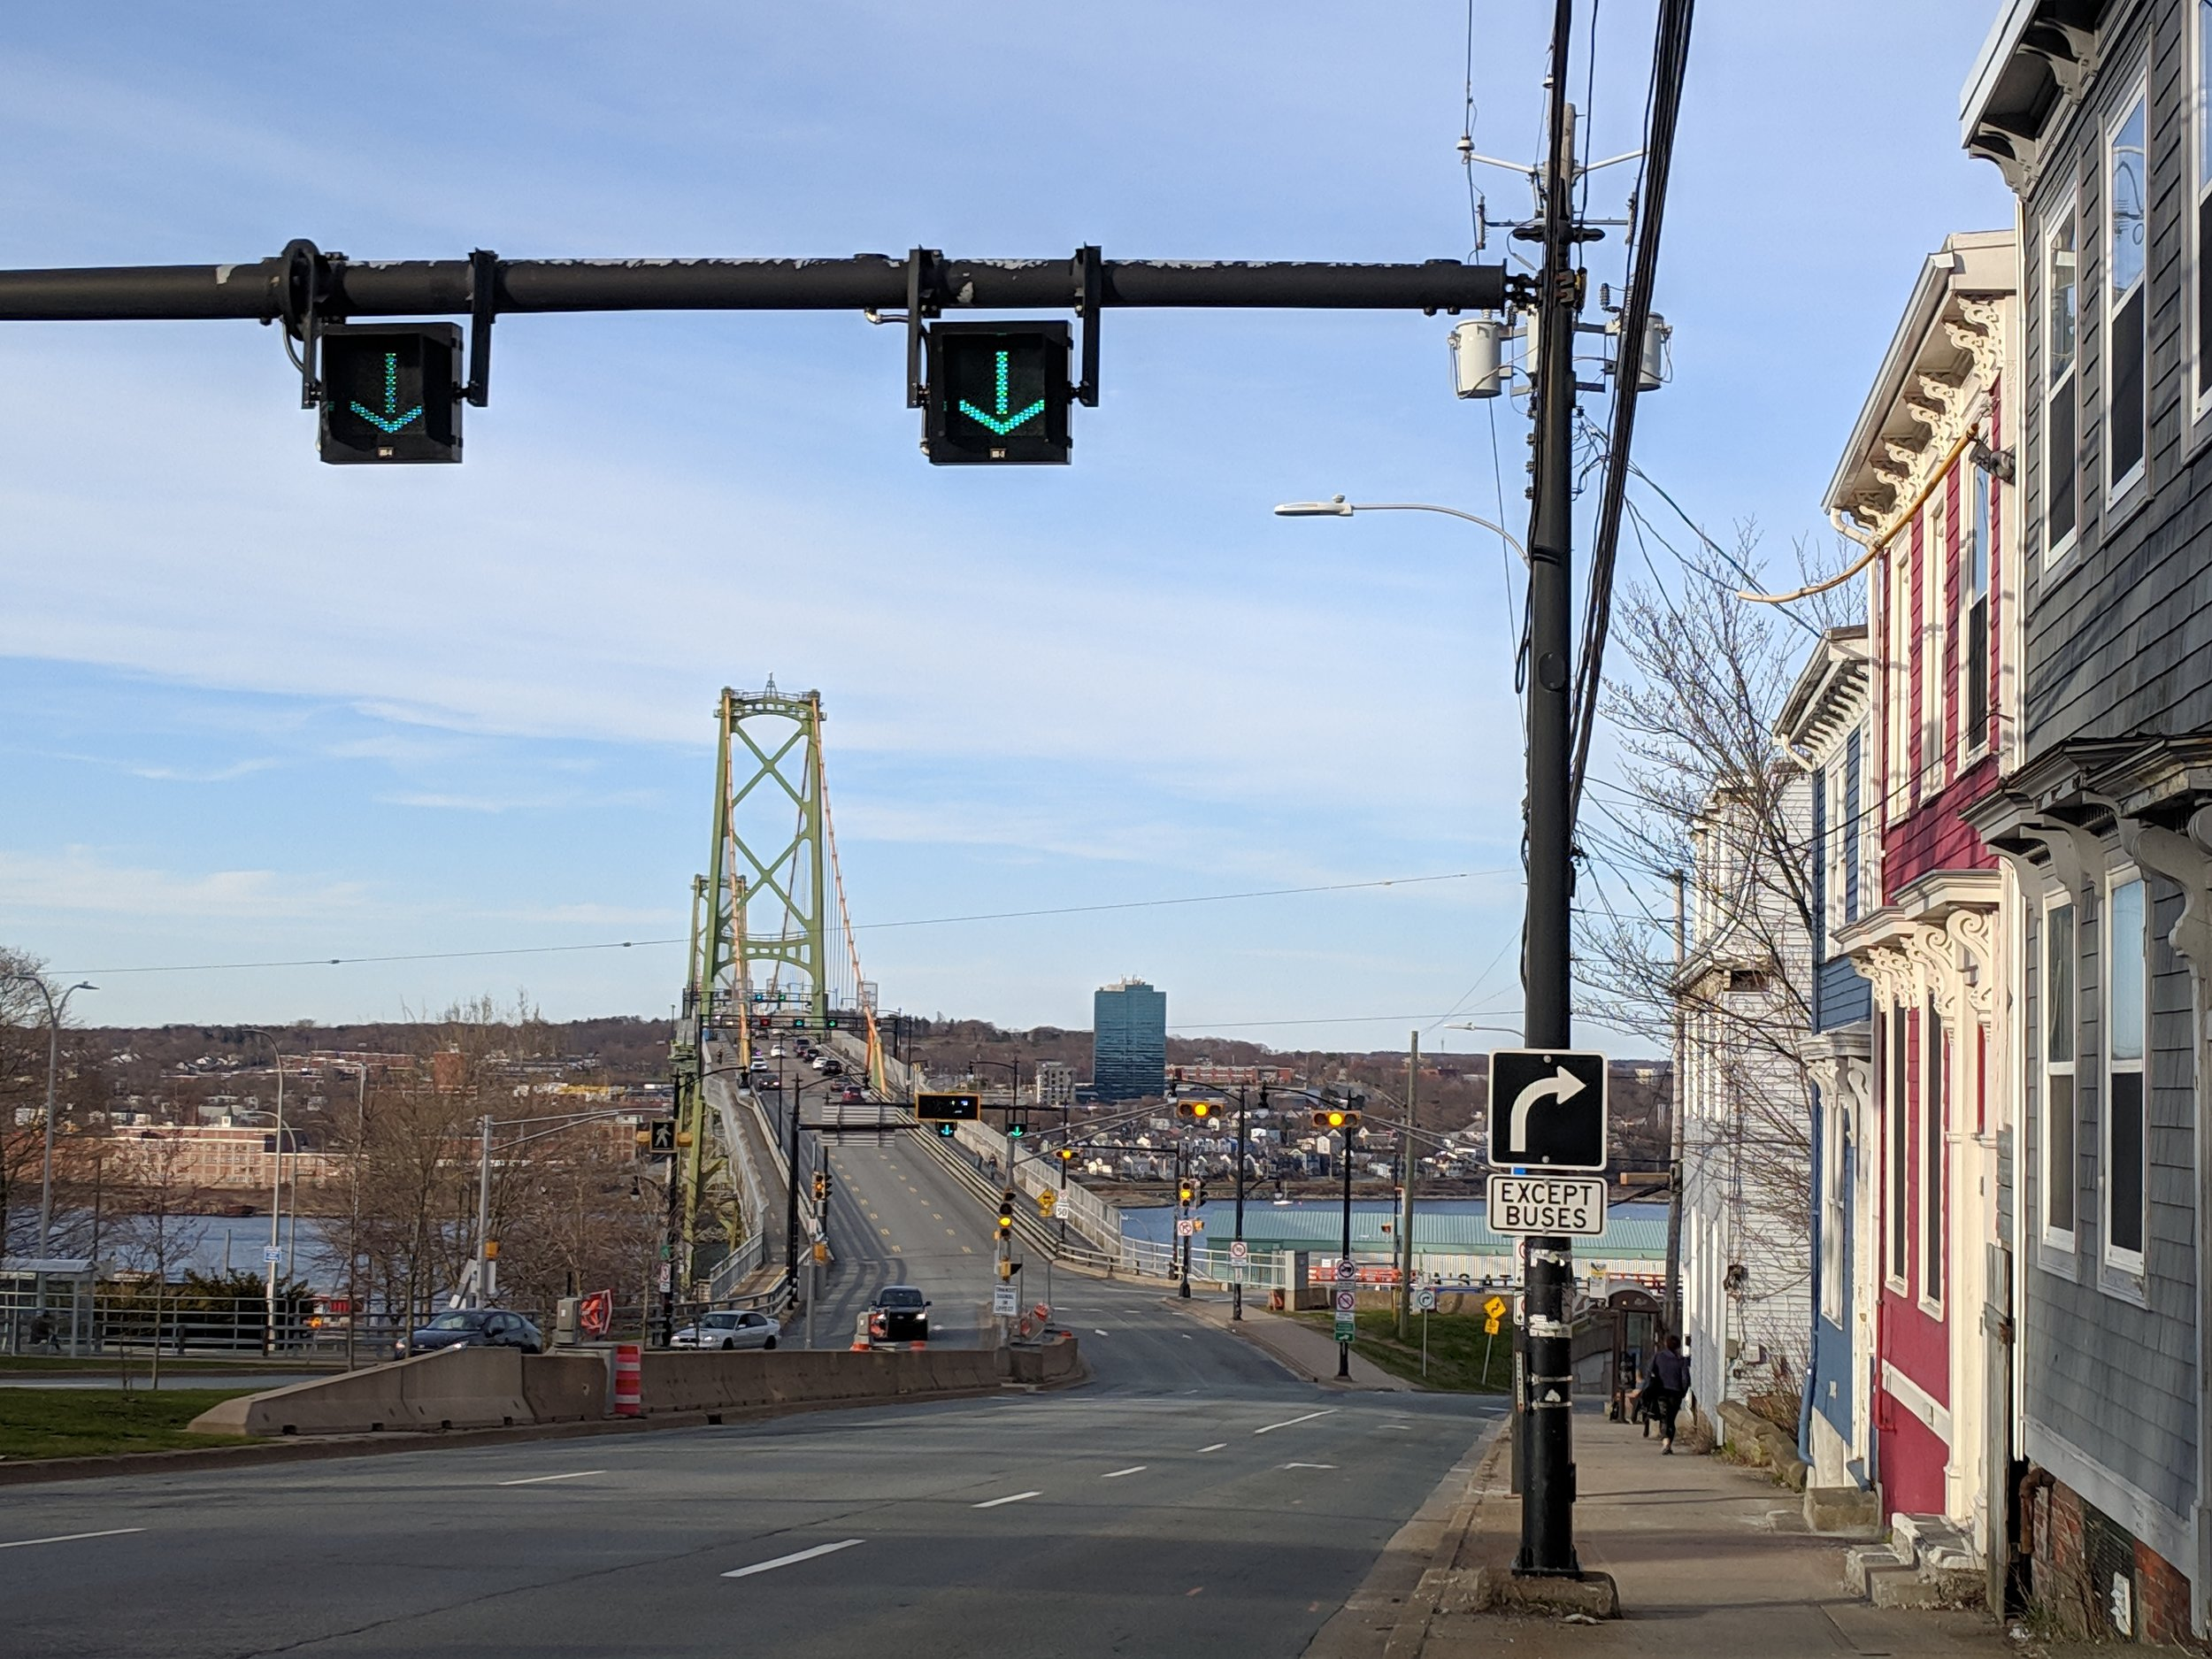 Image 3 - North End - MacDonald Bridge.jpg